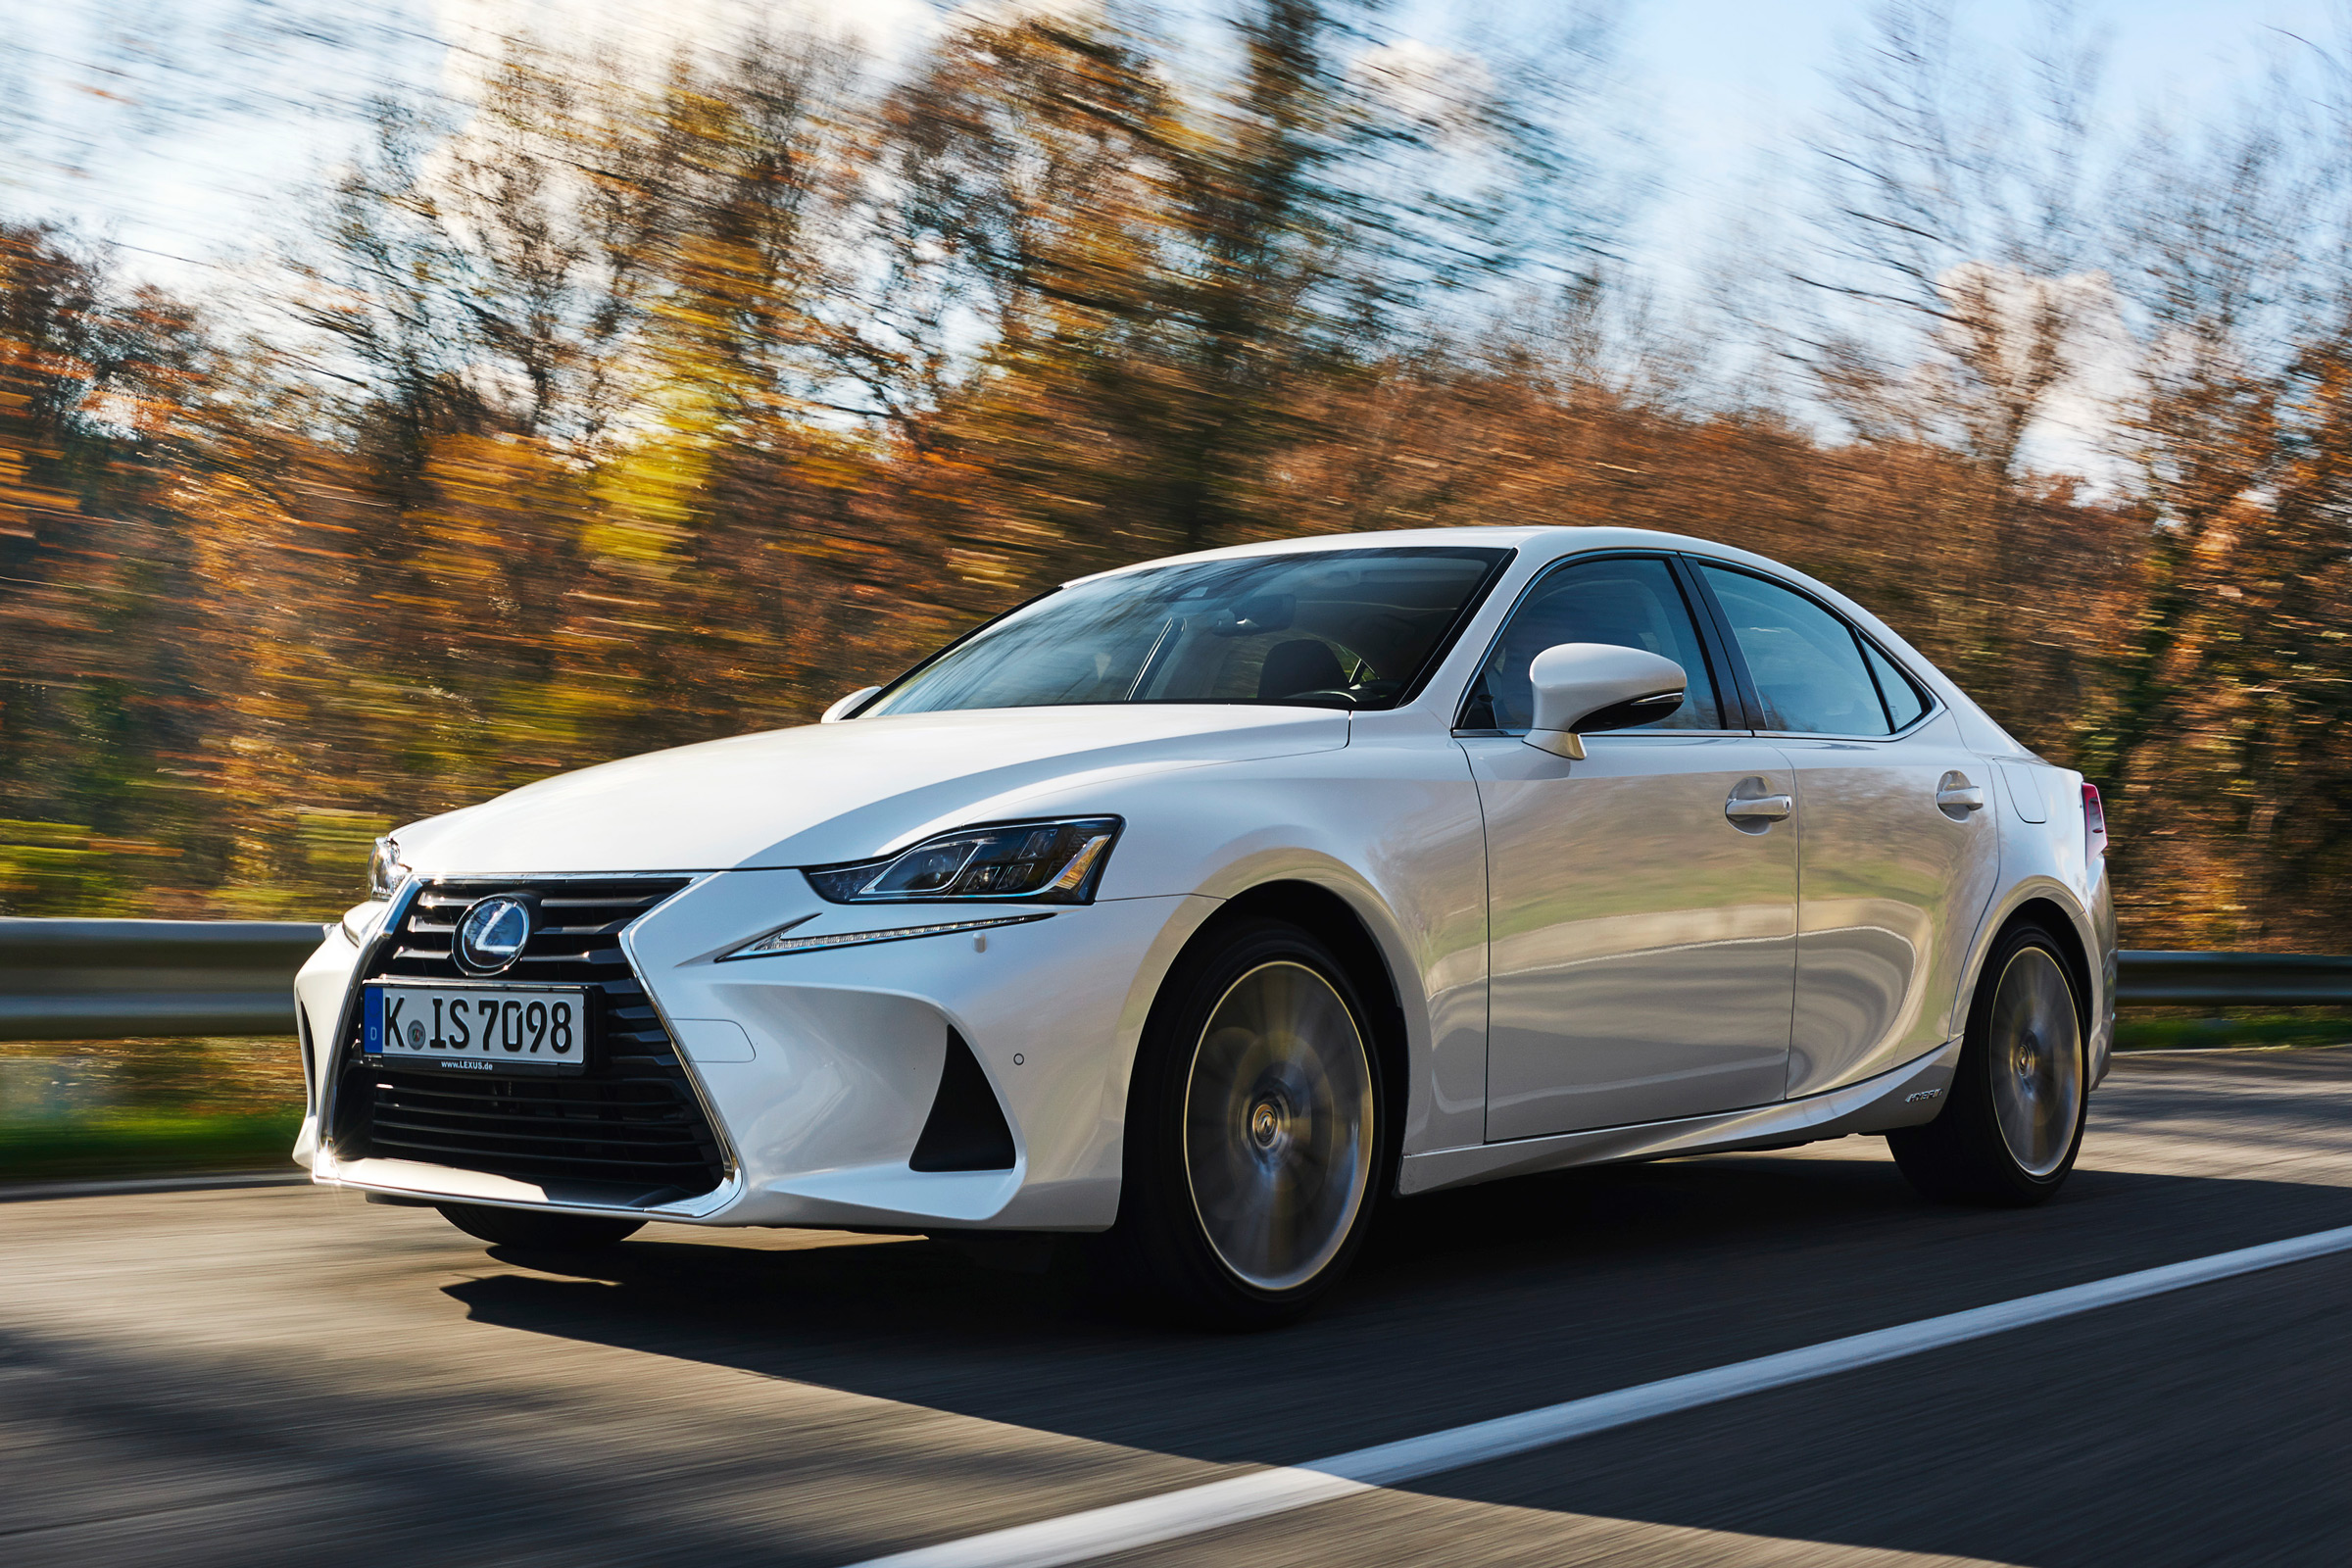 2017 Lexus IS 300h Test Drive Front And Side View (View 6 of 13)